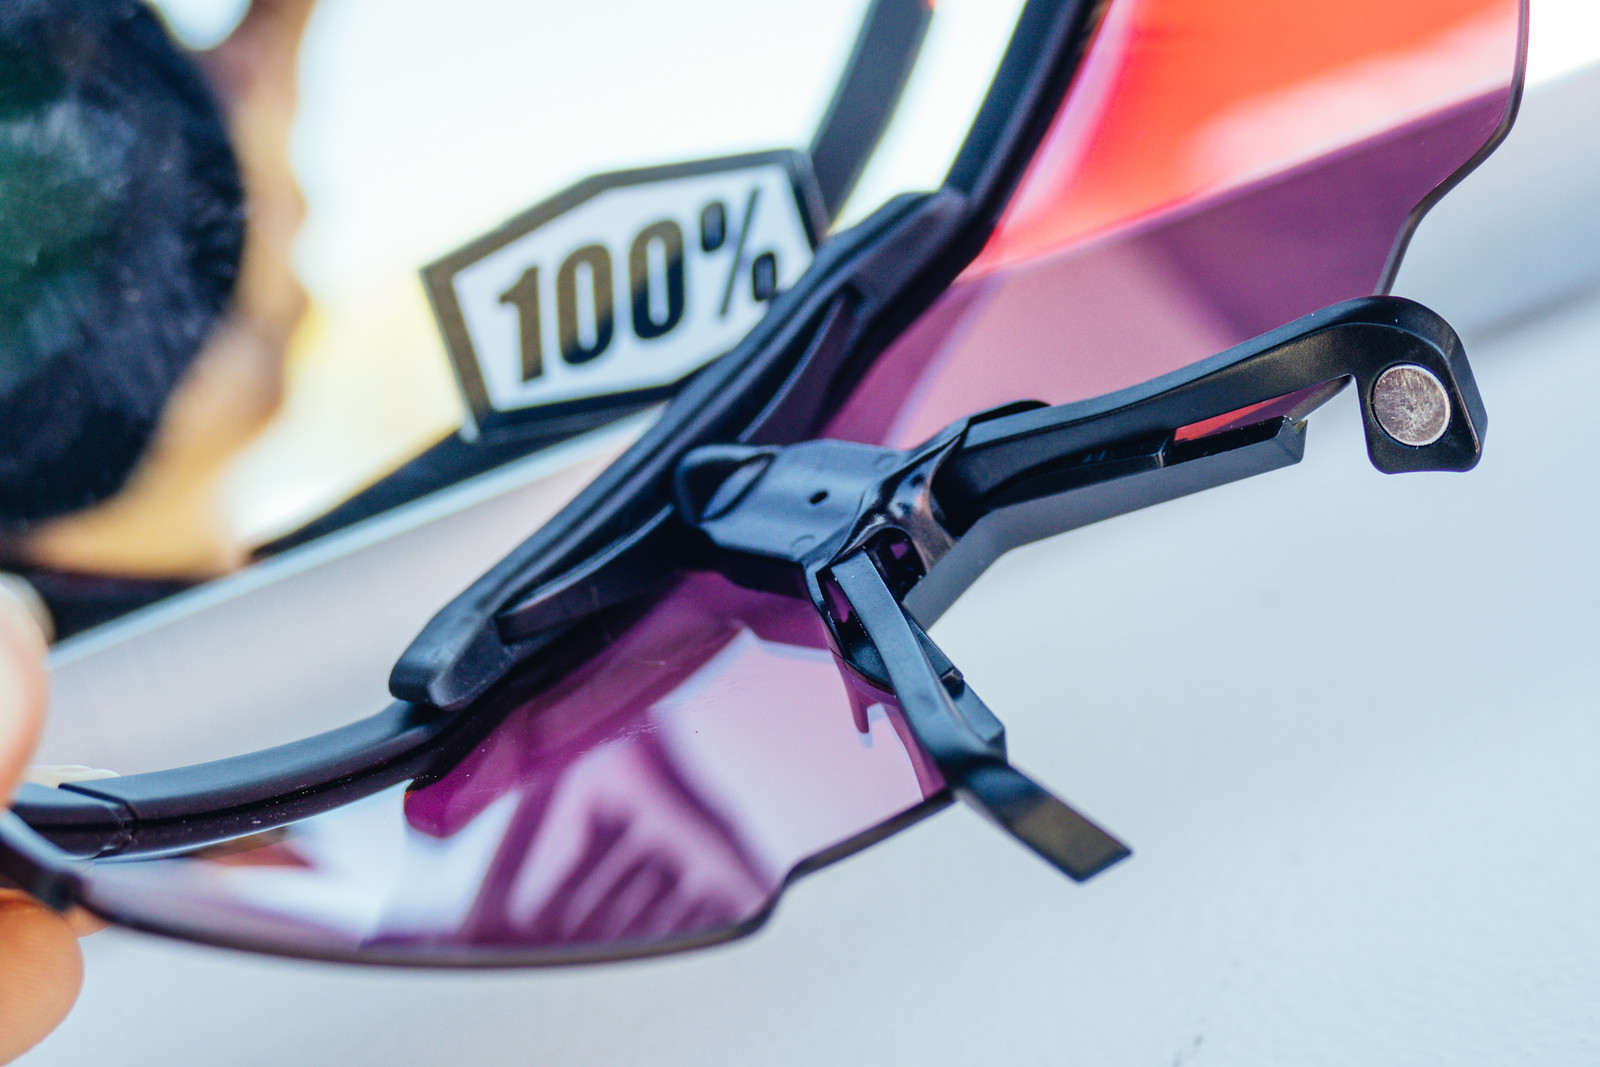 These 100% Sunglasses Use Magnets to Help You Breathe Easier - Sea Otter Classic